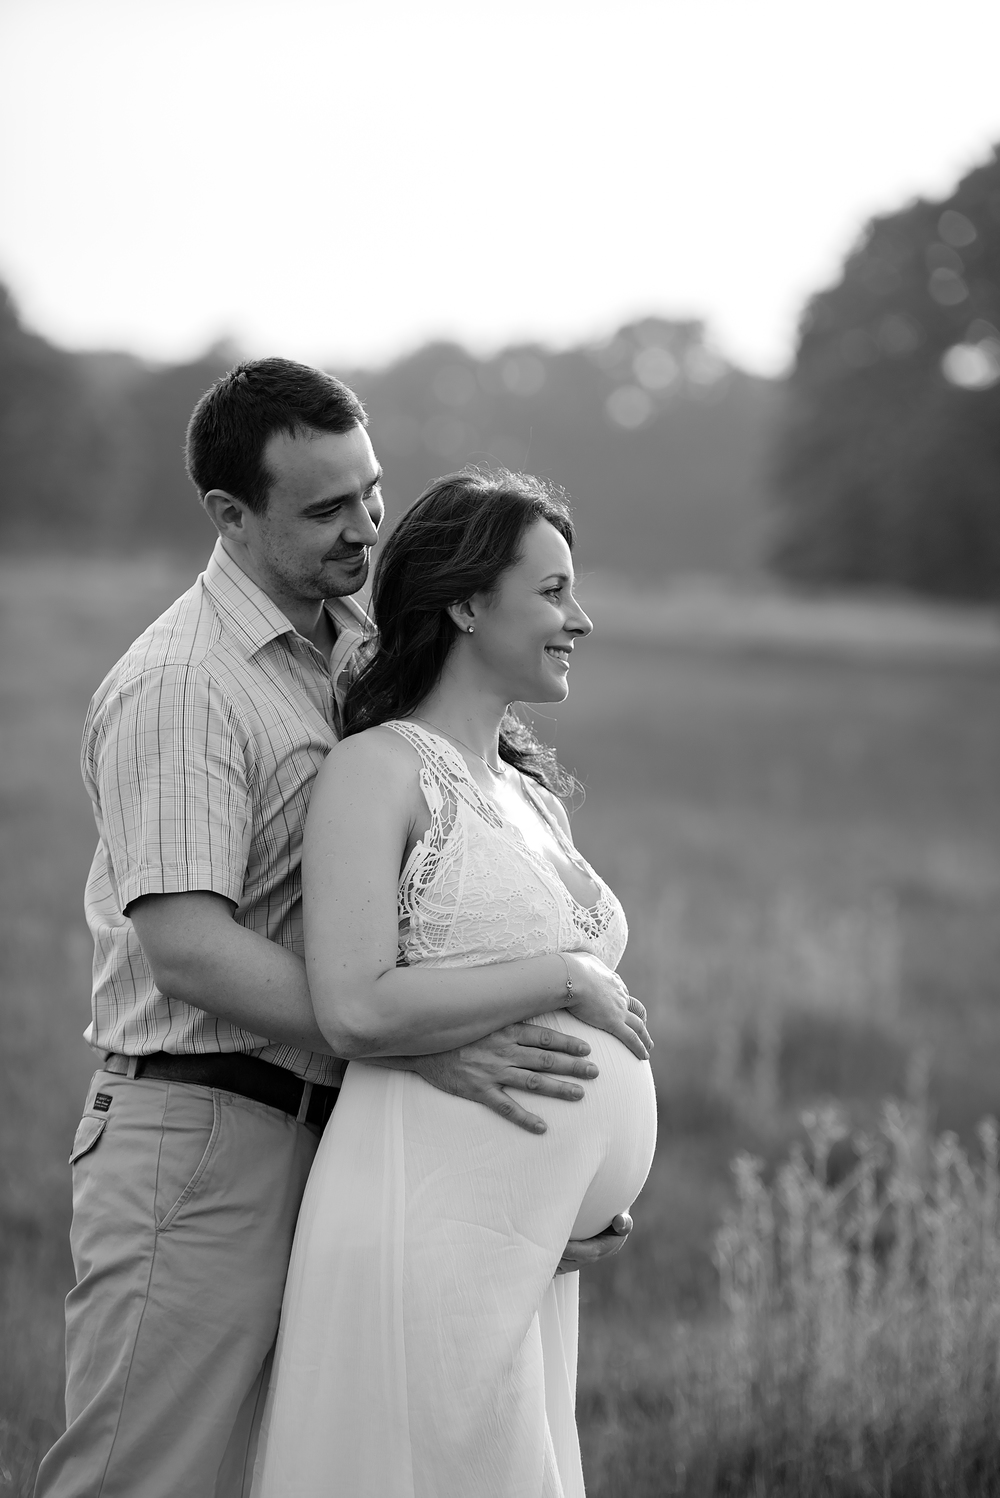 Black and white maternity photography | London